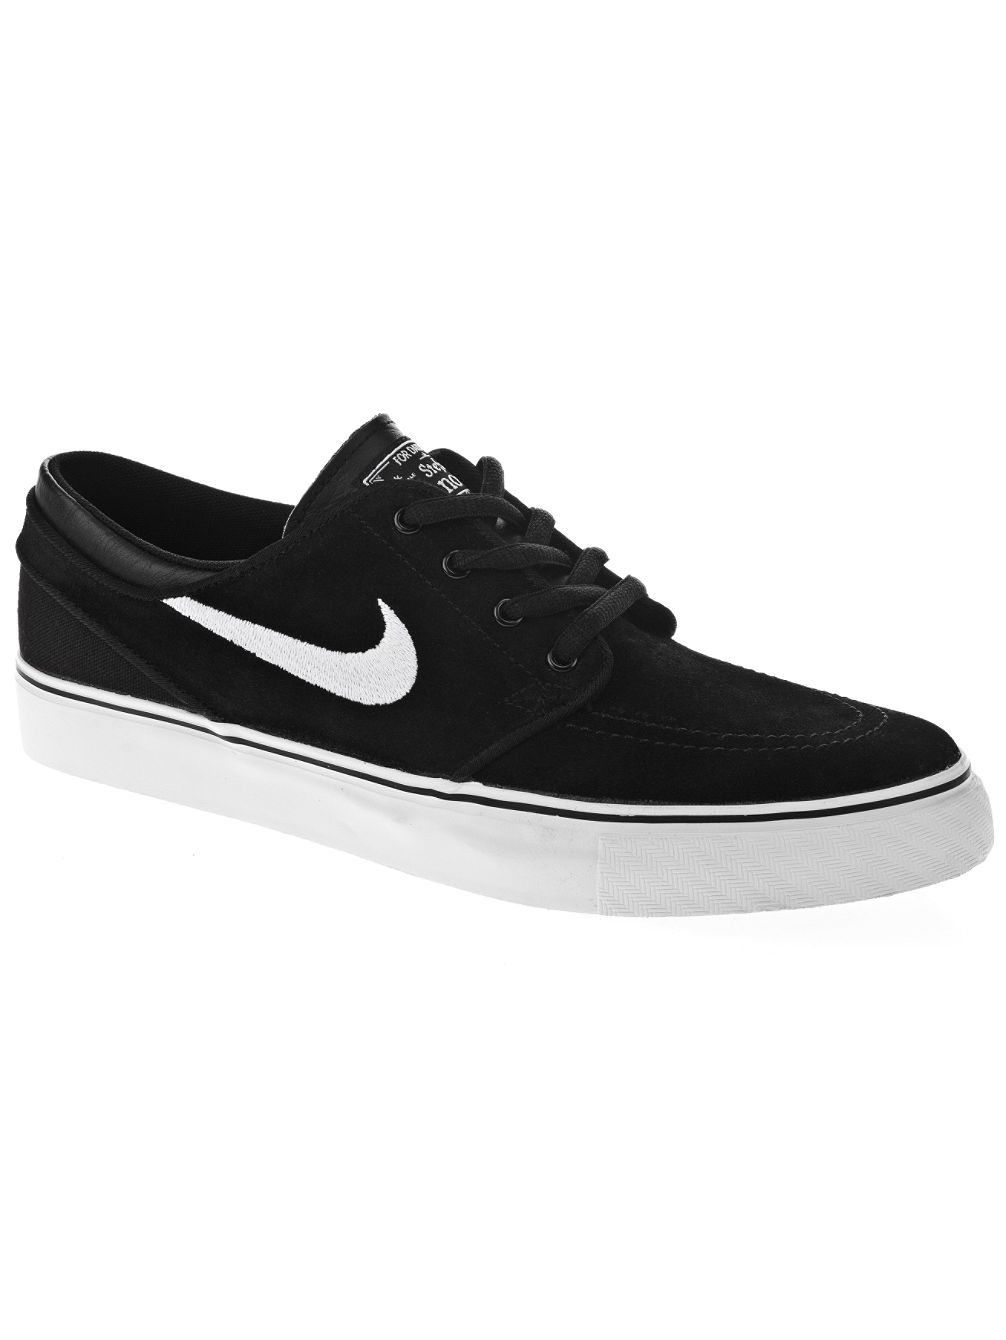 Stefan Janoski GS Skate Shoes Boys